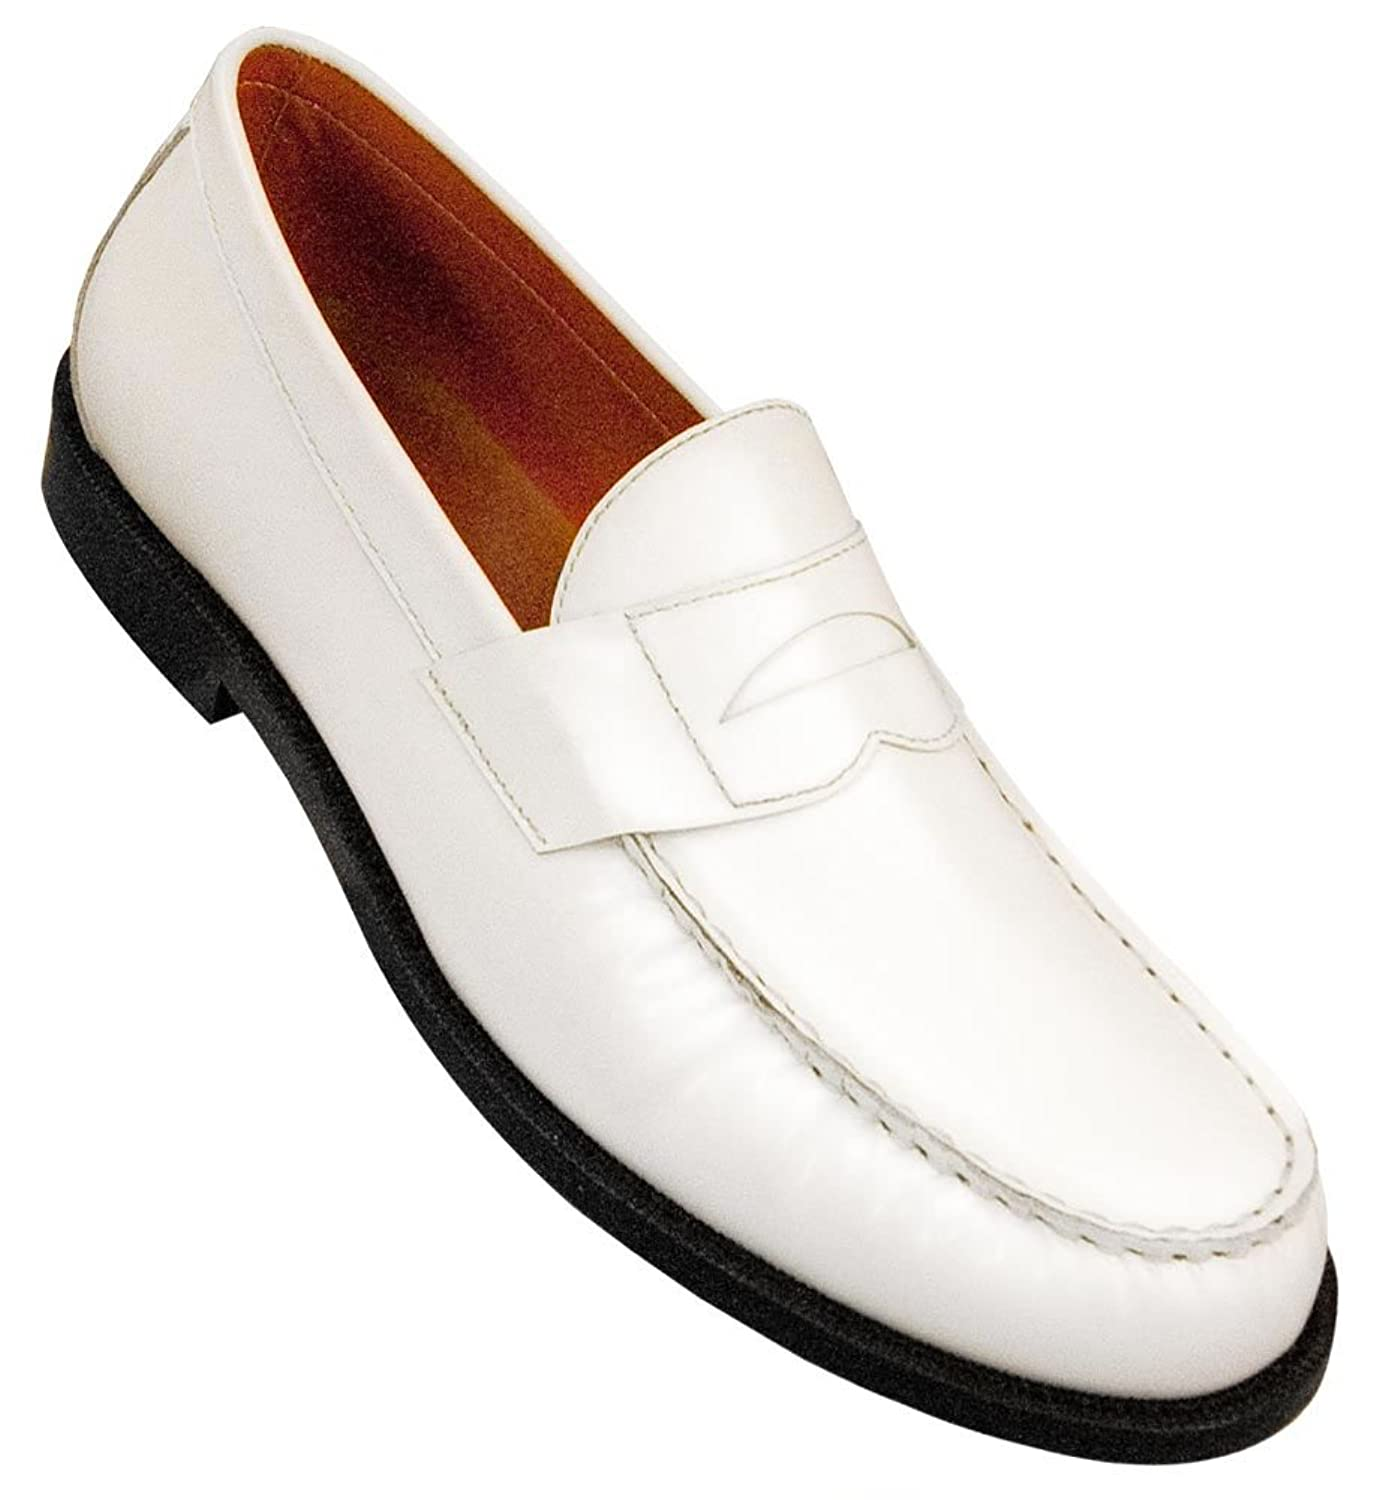 1950s Mens Shoes: Saddle Shoes, Boots, Greaser, Rockabilly Aris Allen Mens White Dance Loafers $48.95 AT vintagedancer.com